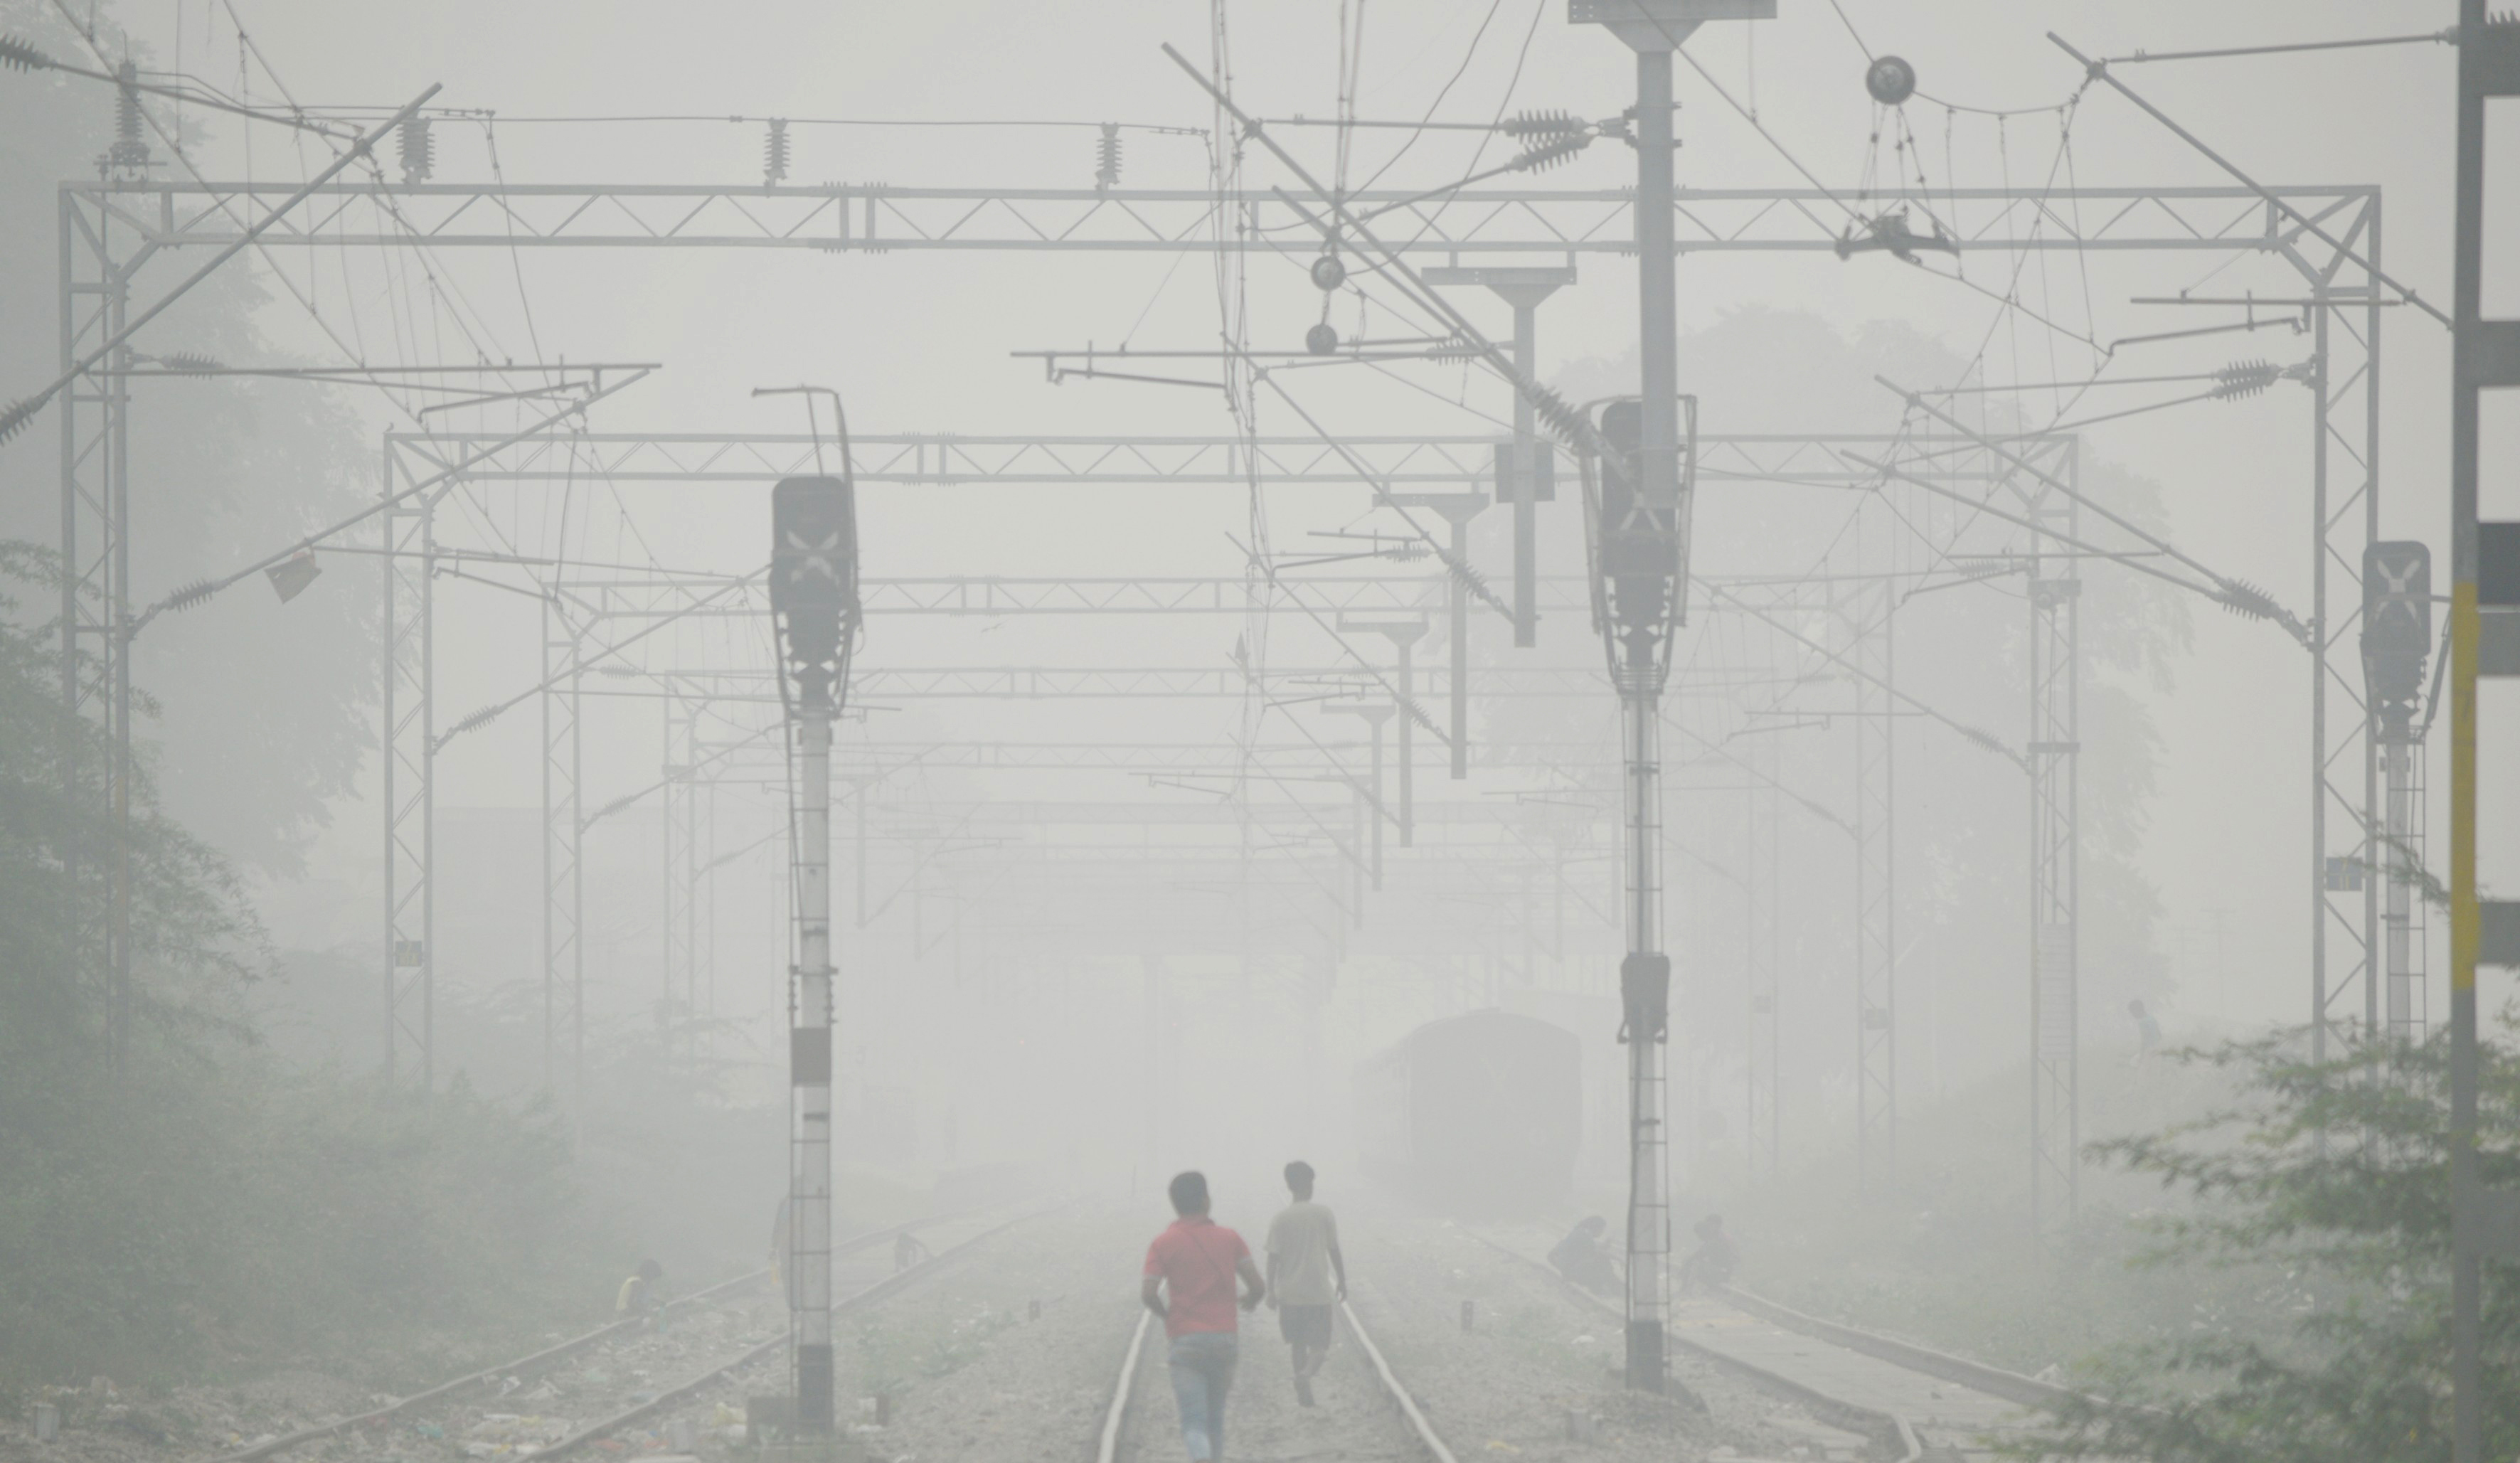 Heavy Smog In Lucknow, India